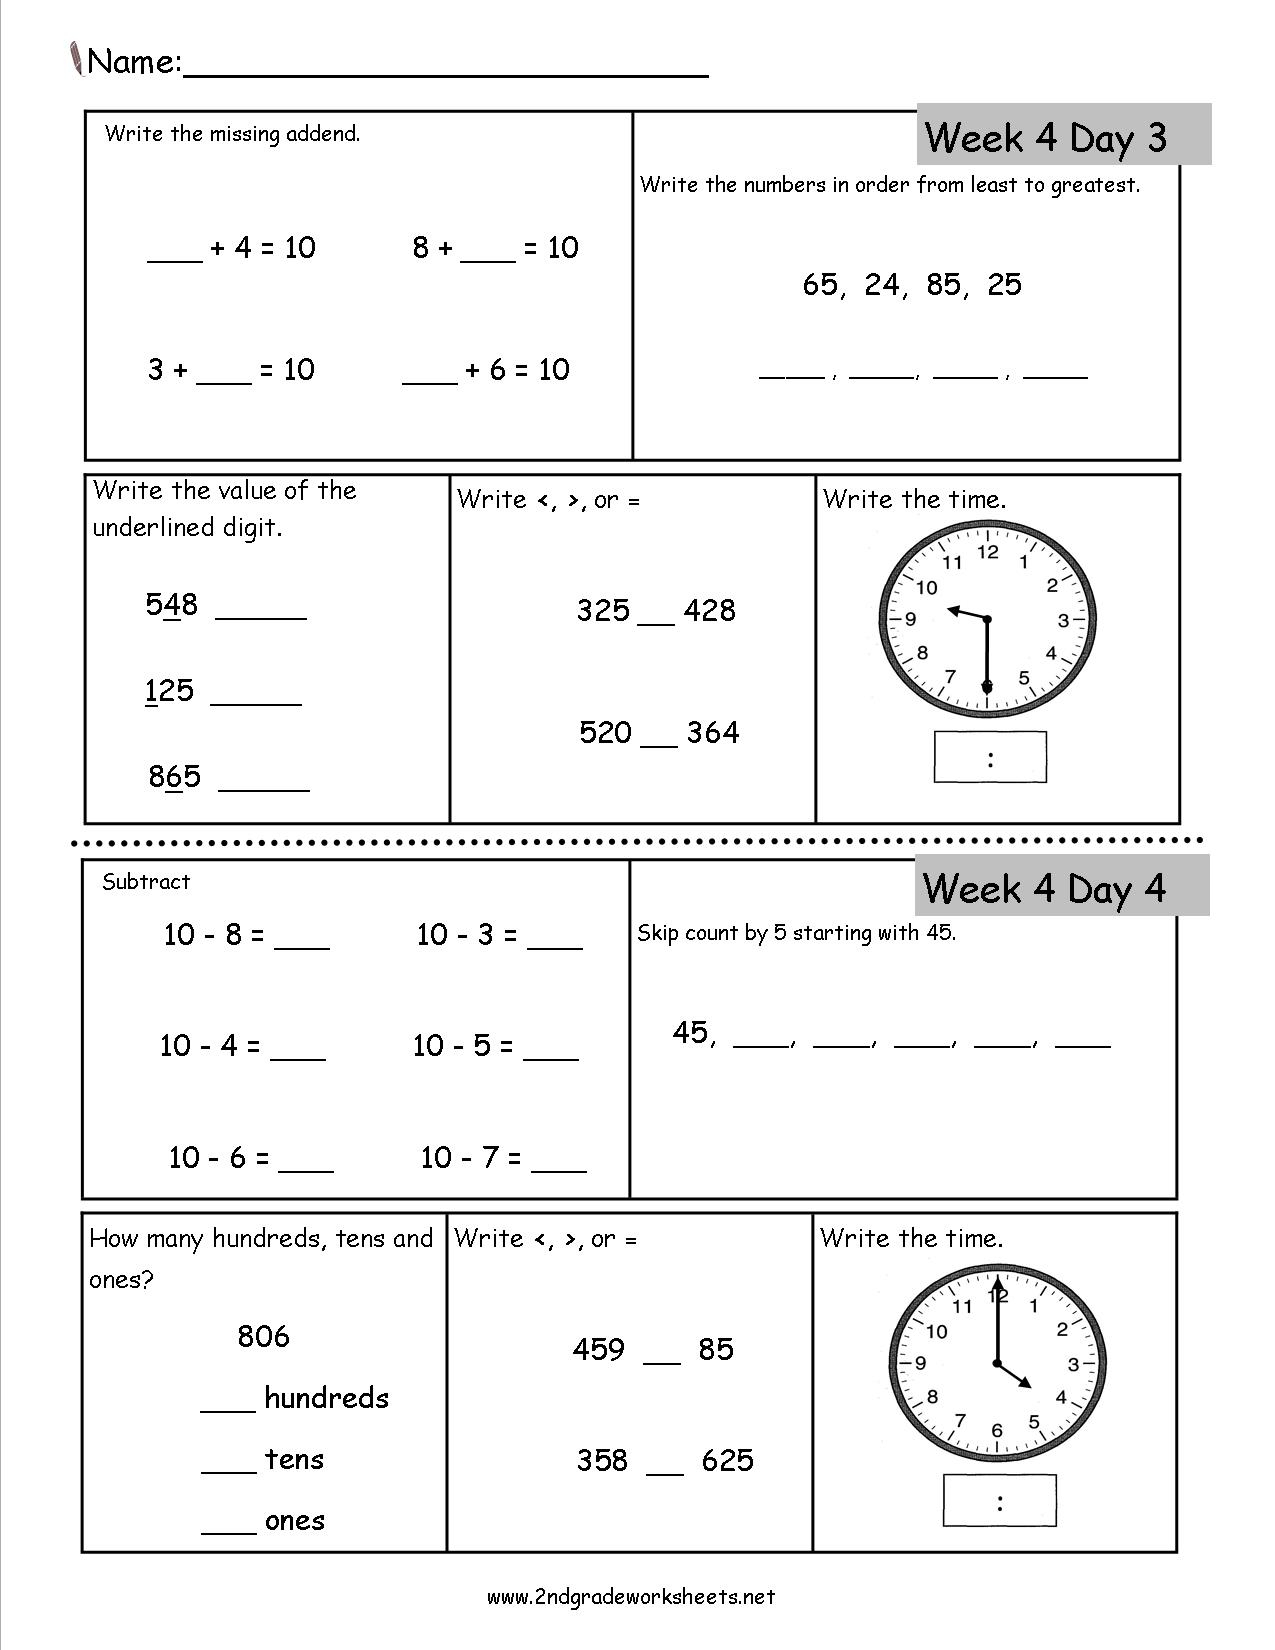 2Nd Grade Daily Math Worksheets - Free Printable Time Worksheets For Grade 3